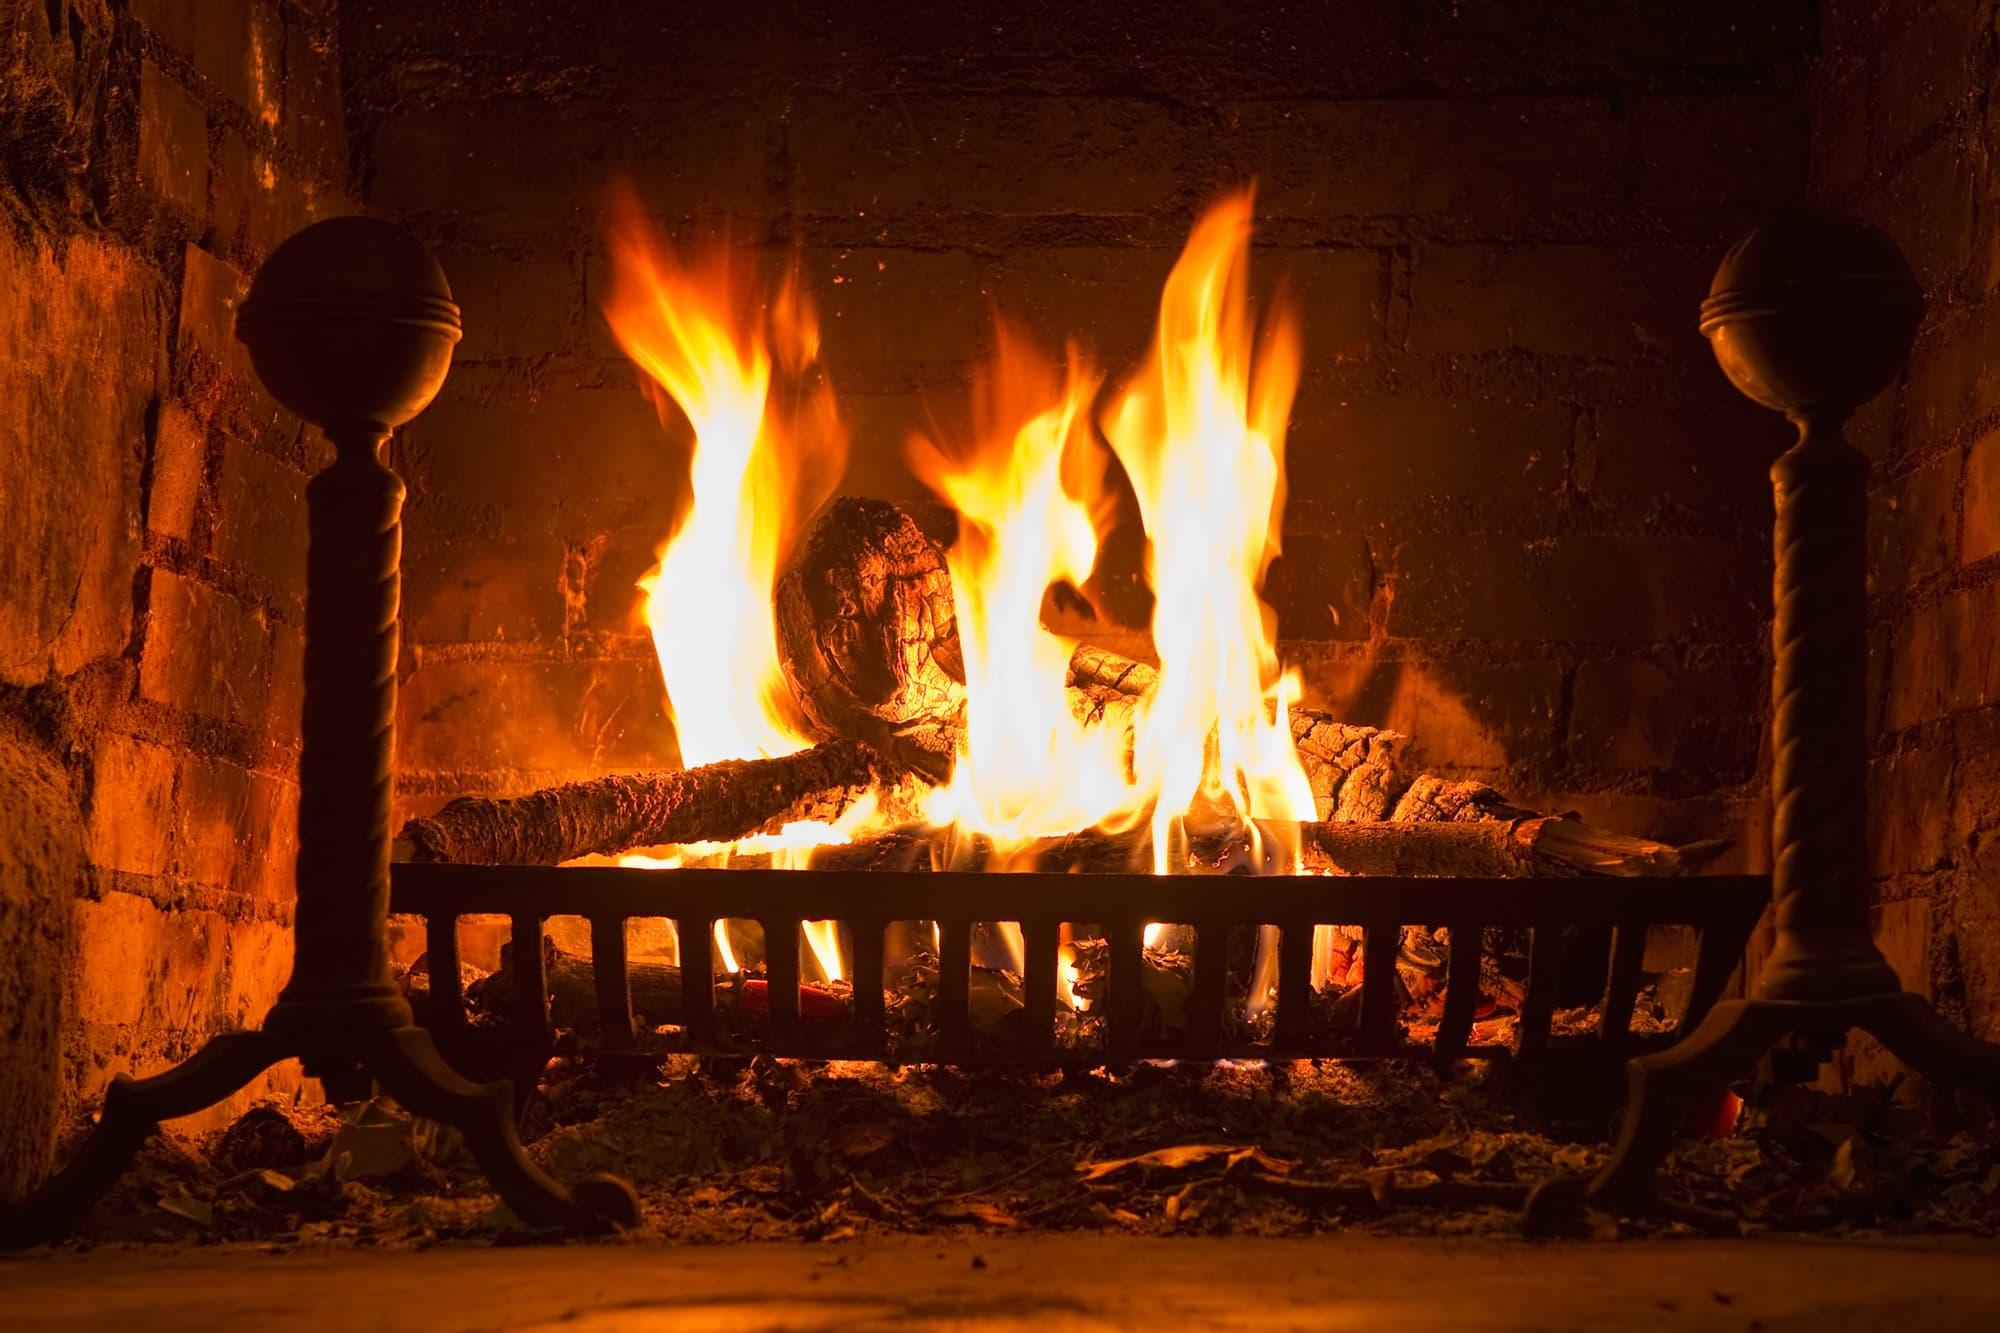 to burn less money consider heating with wood